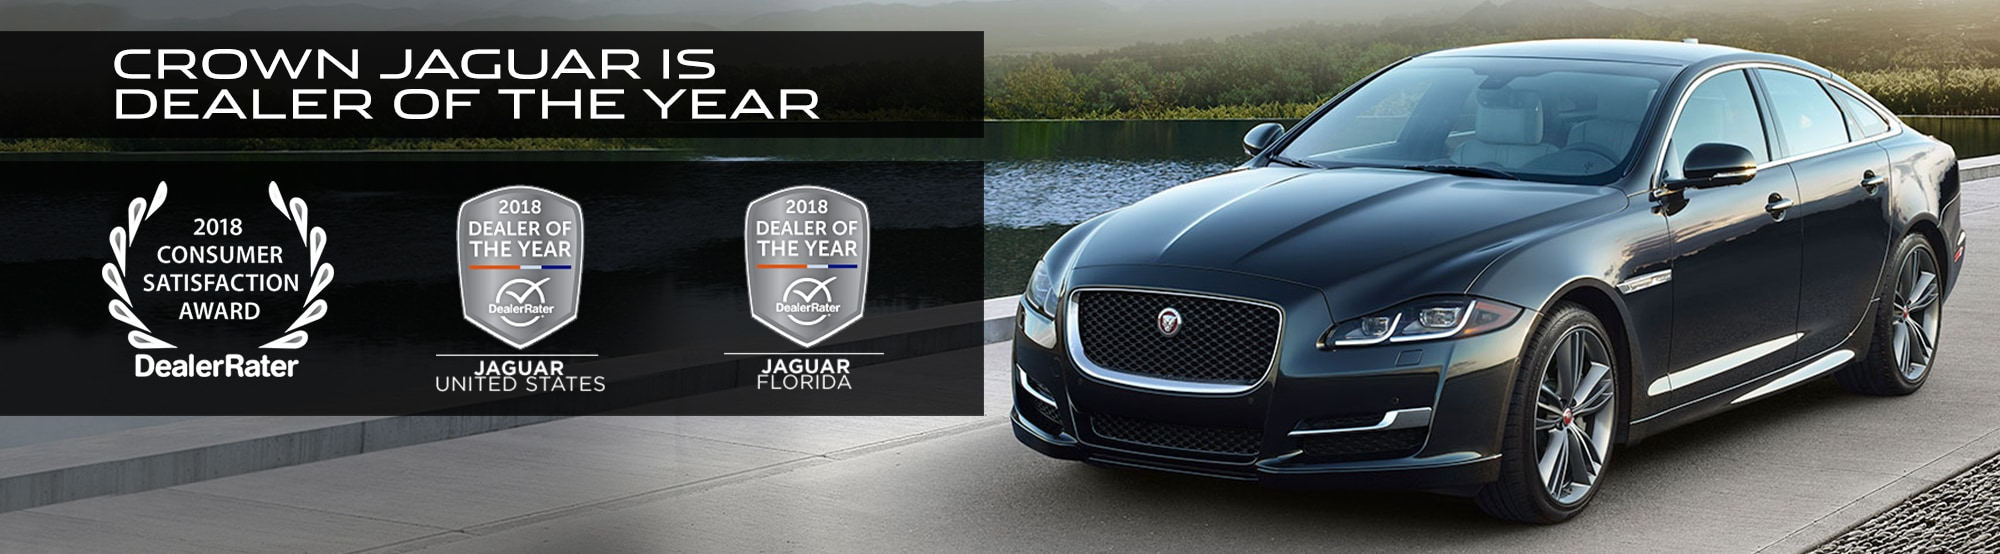 meet jaguar trusted dealers the bradford a member